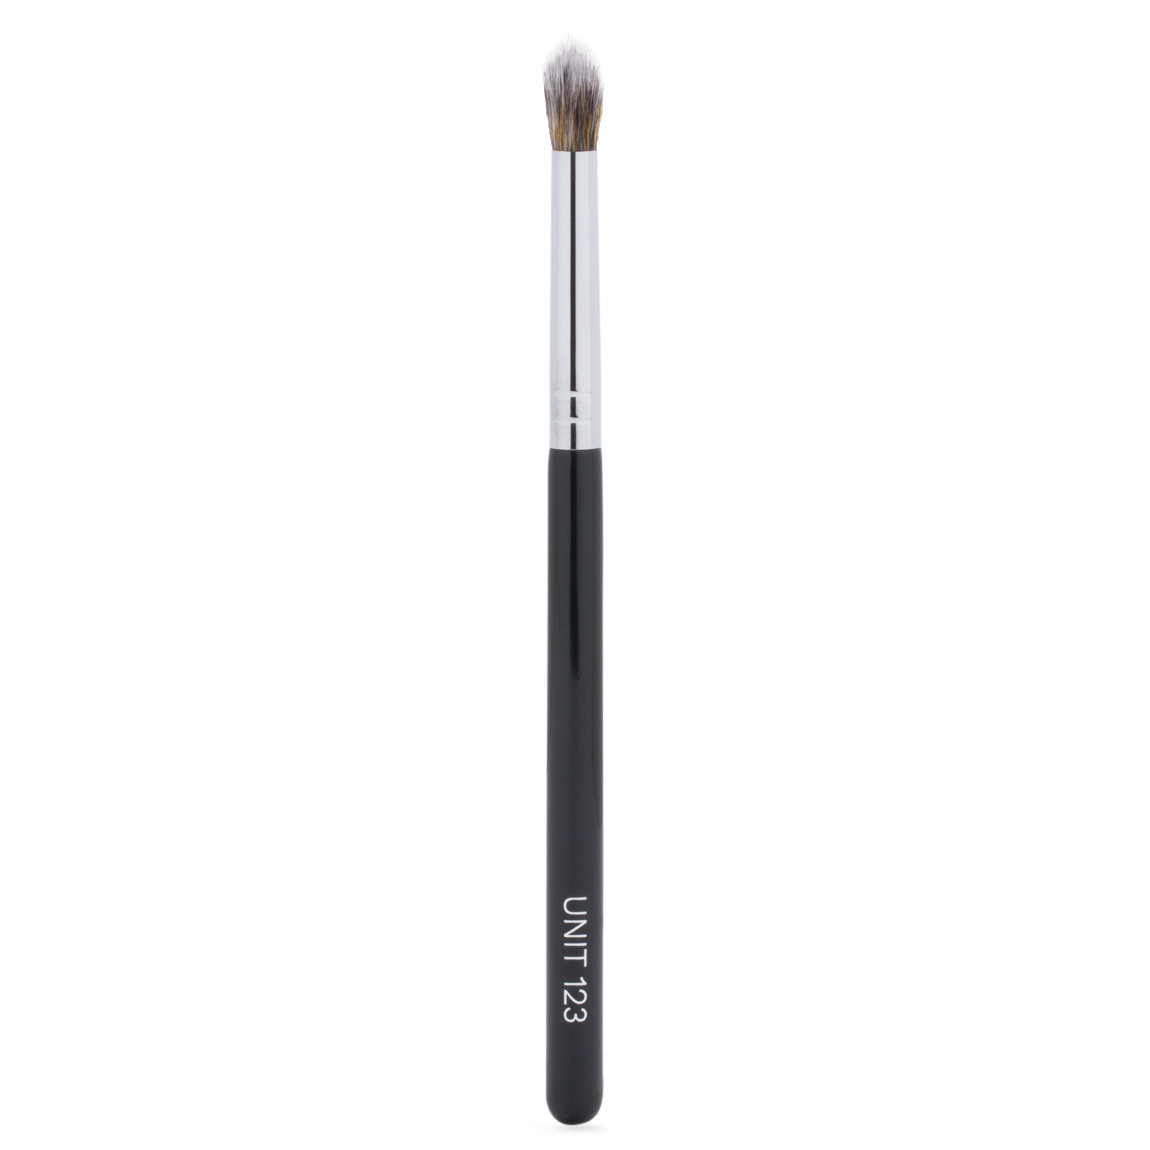 UNITS UNIT 123 Eye Brush product smear.